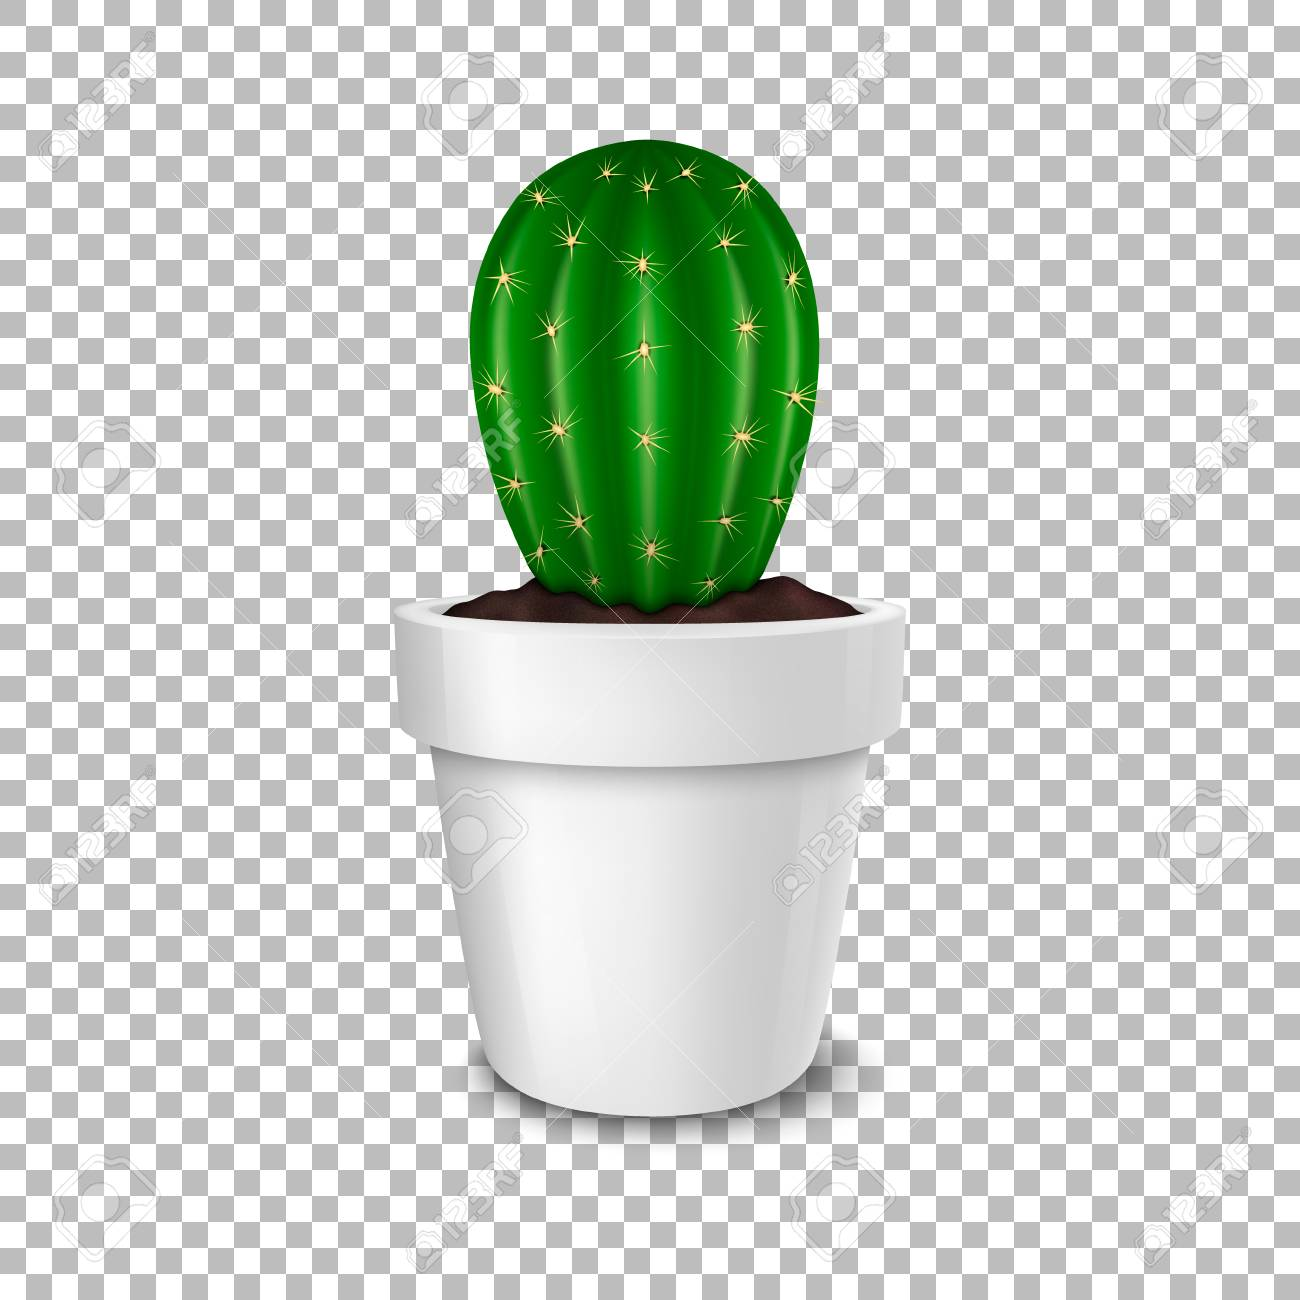 Cactus Planting Pots Realistic Decorative Cactus Plant In White Flower Pot Icon Closeup